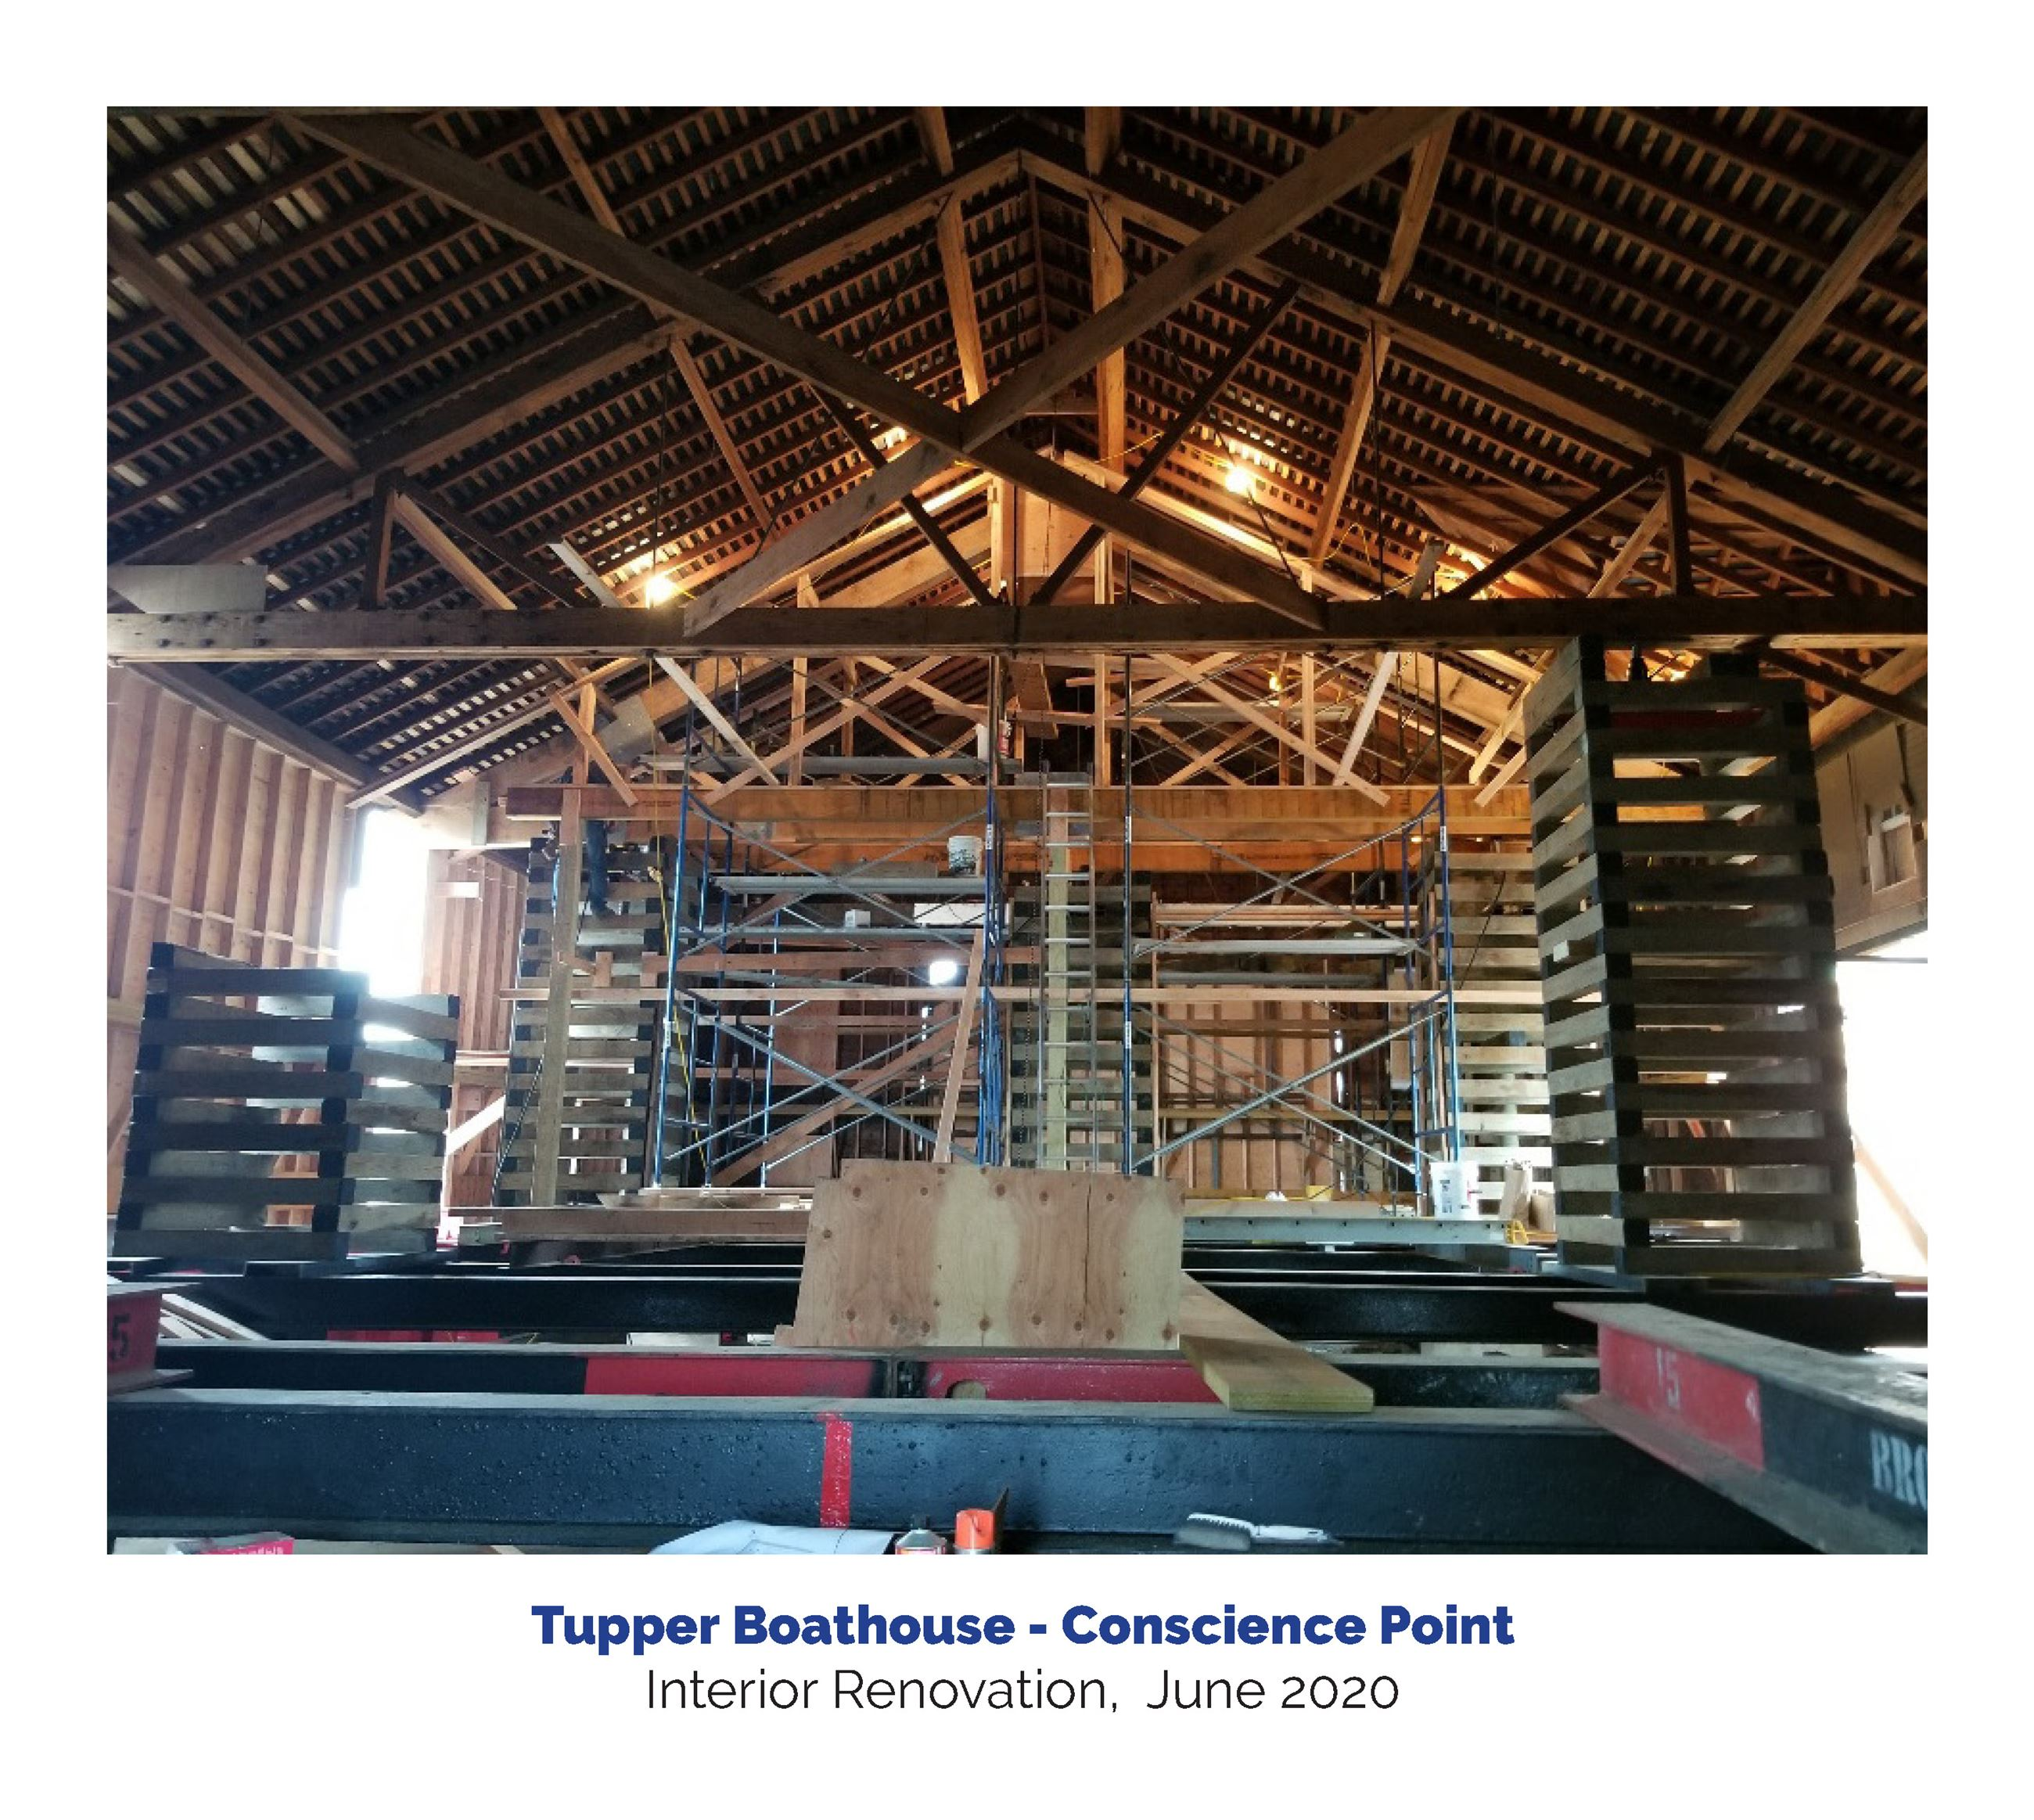 Tupper-Boathouse_06-2020 3